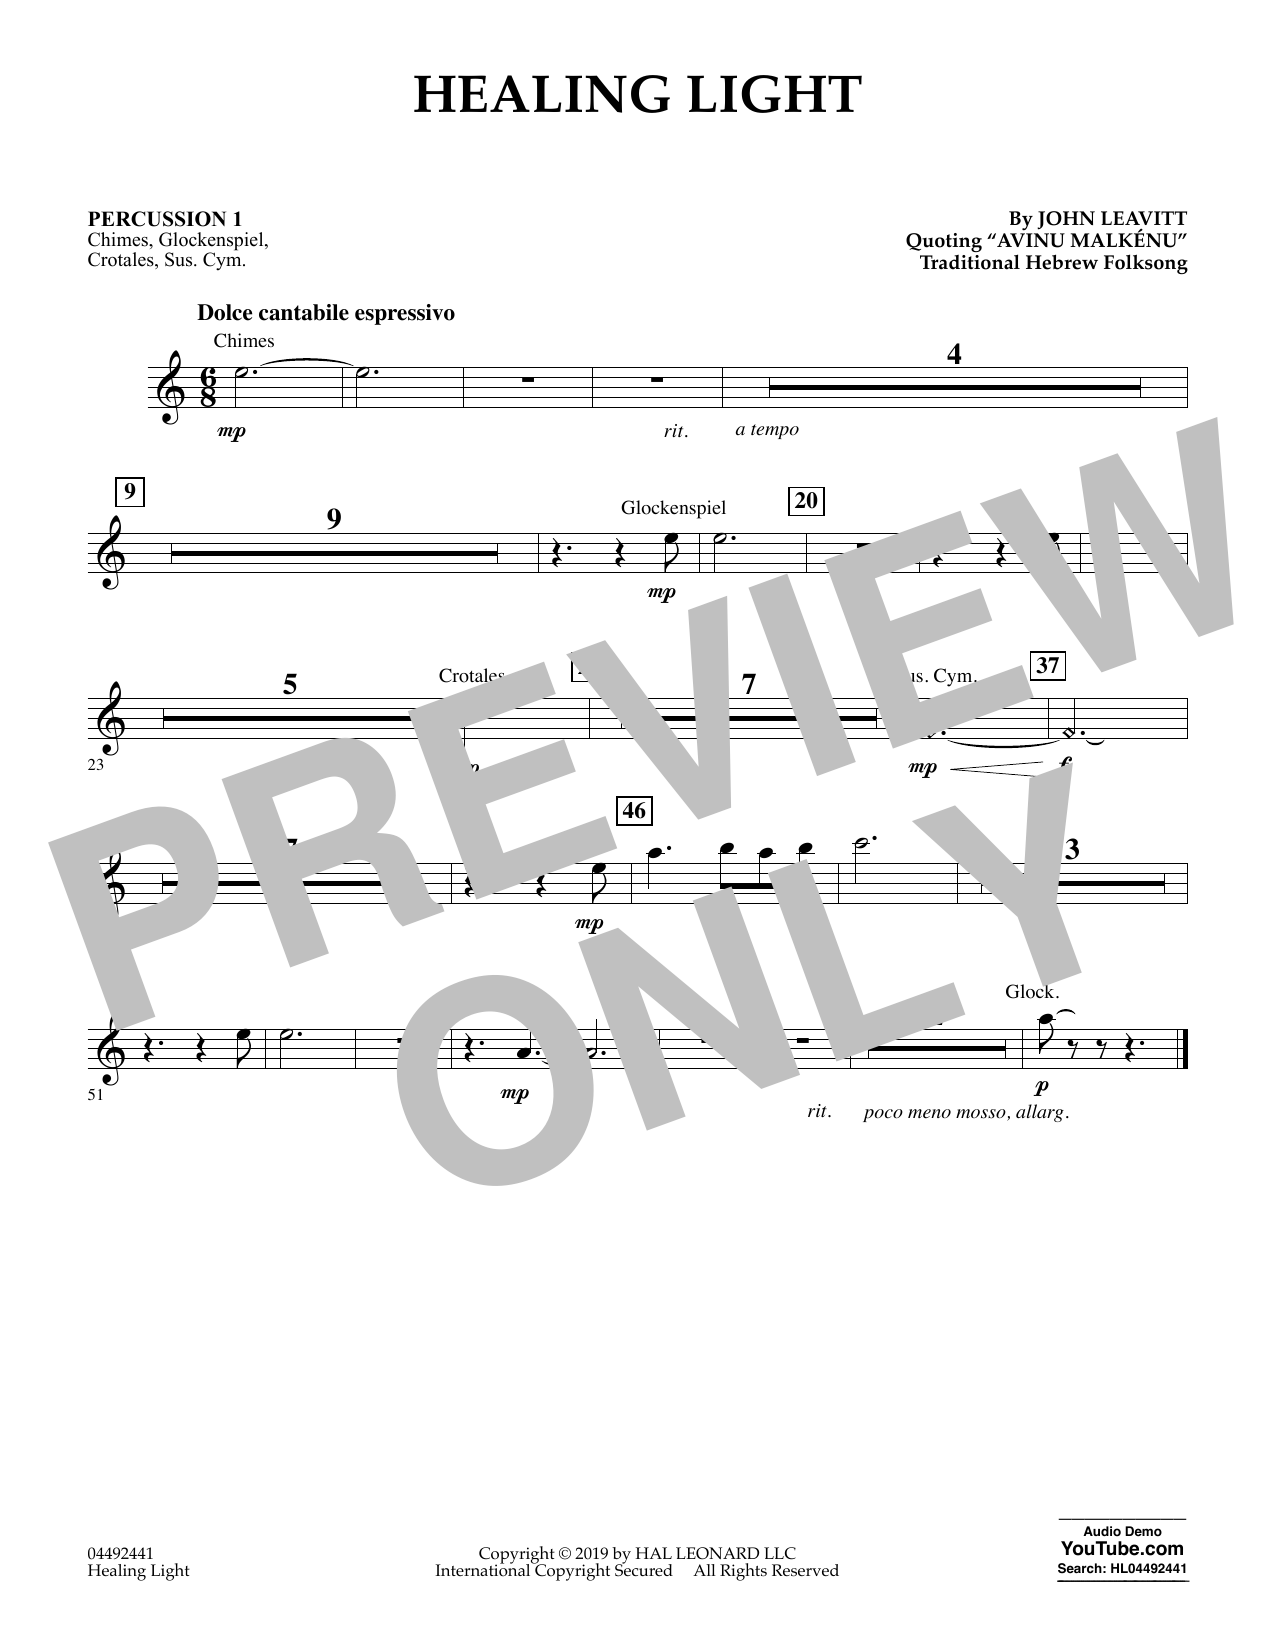 Healing Light - Percussion 1 (Orchestra)